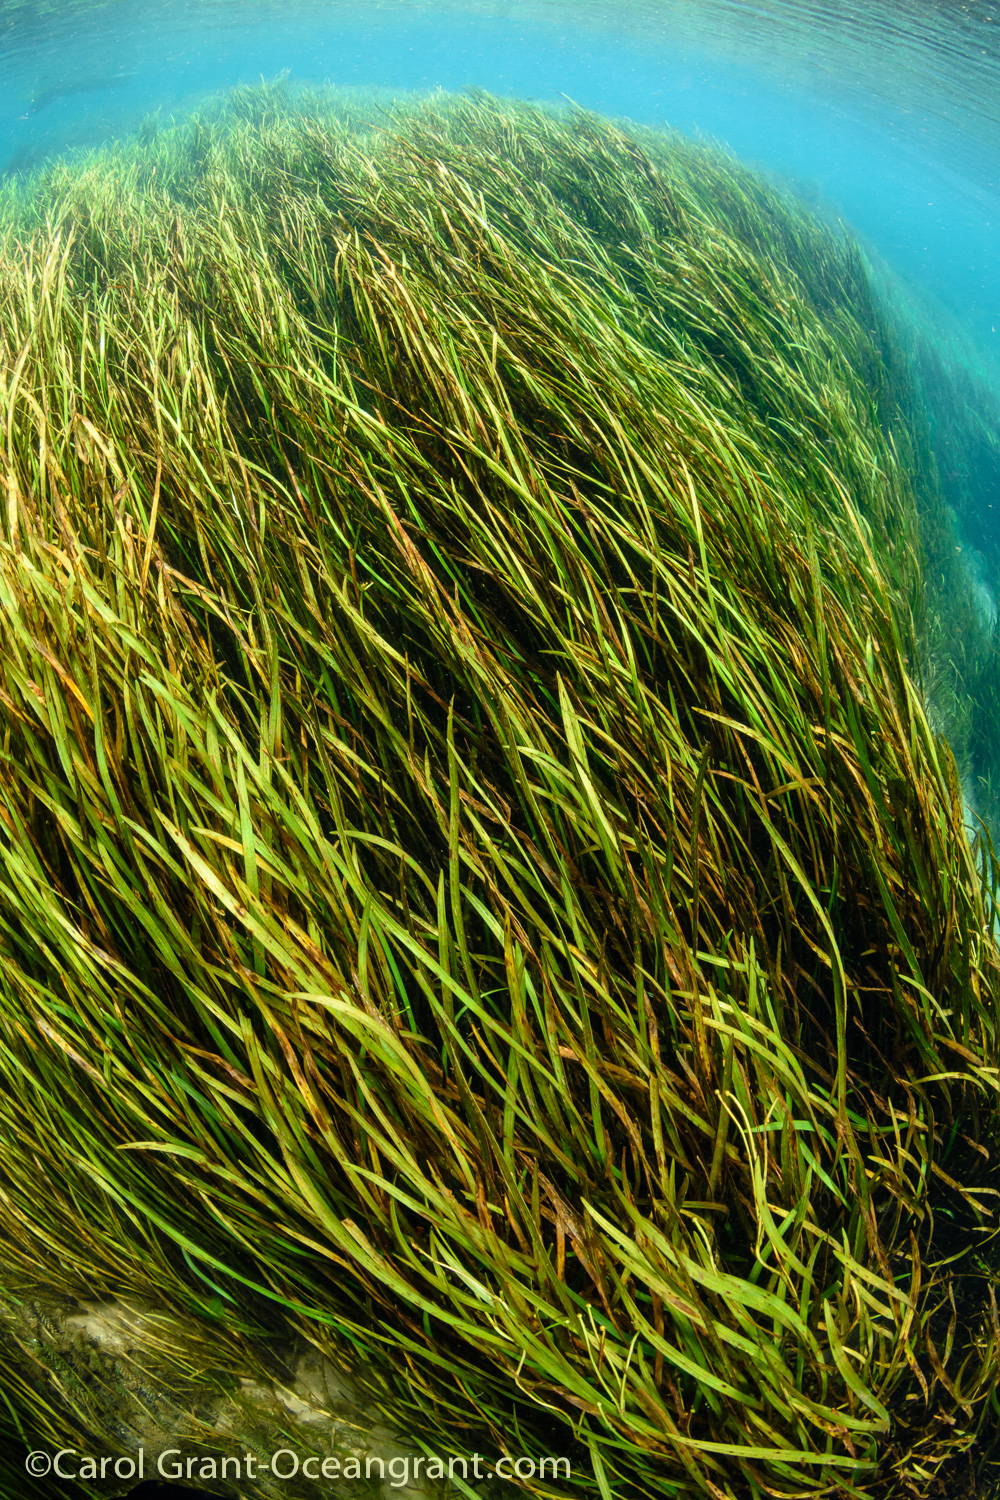 Rainbow River,aquatic grasses, current